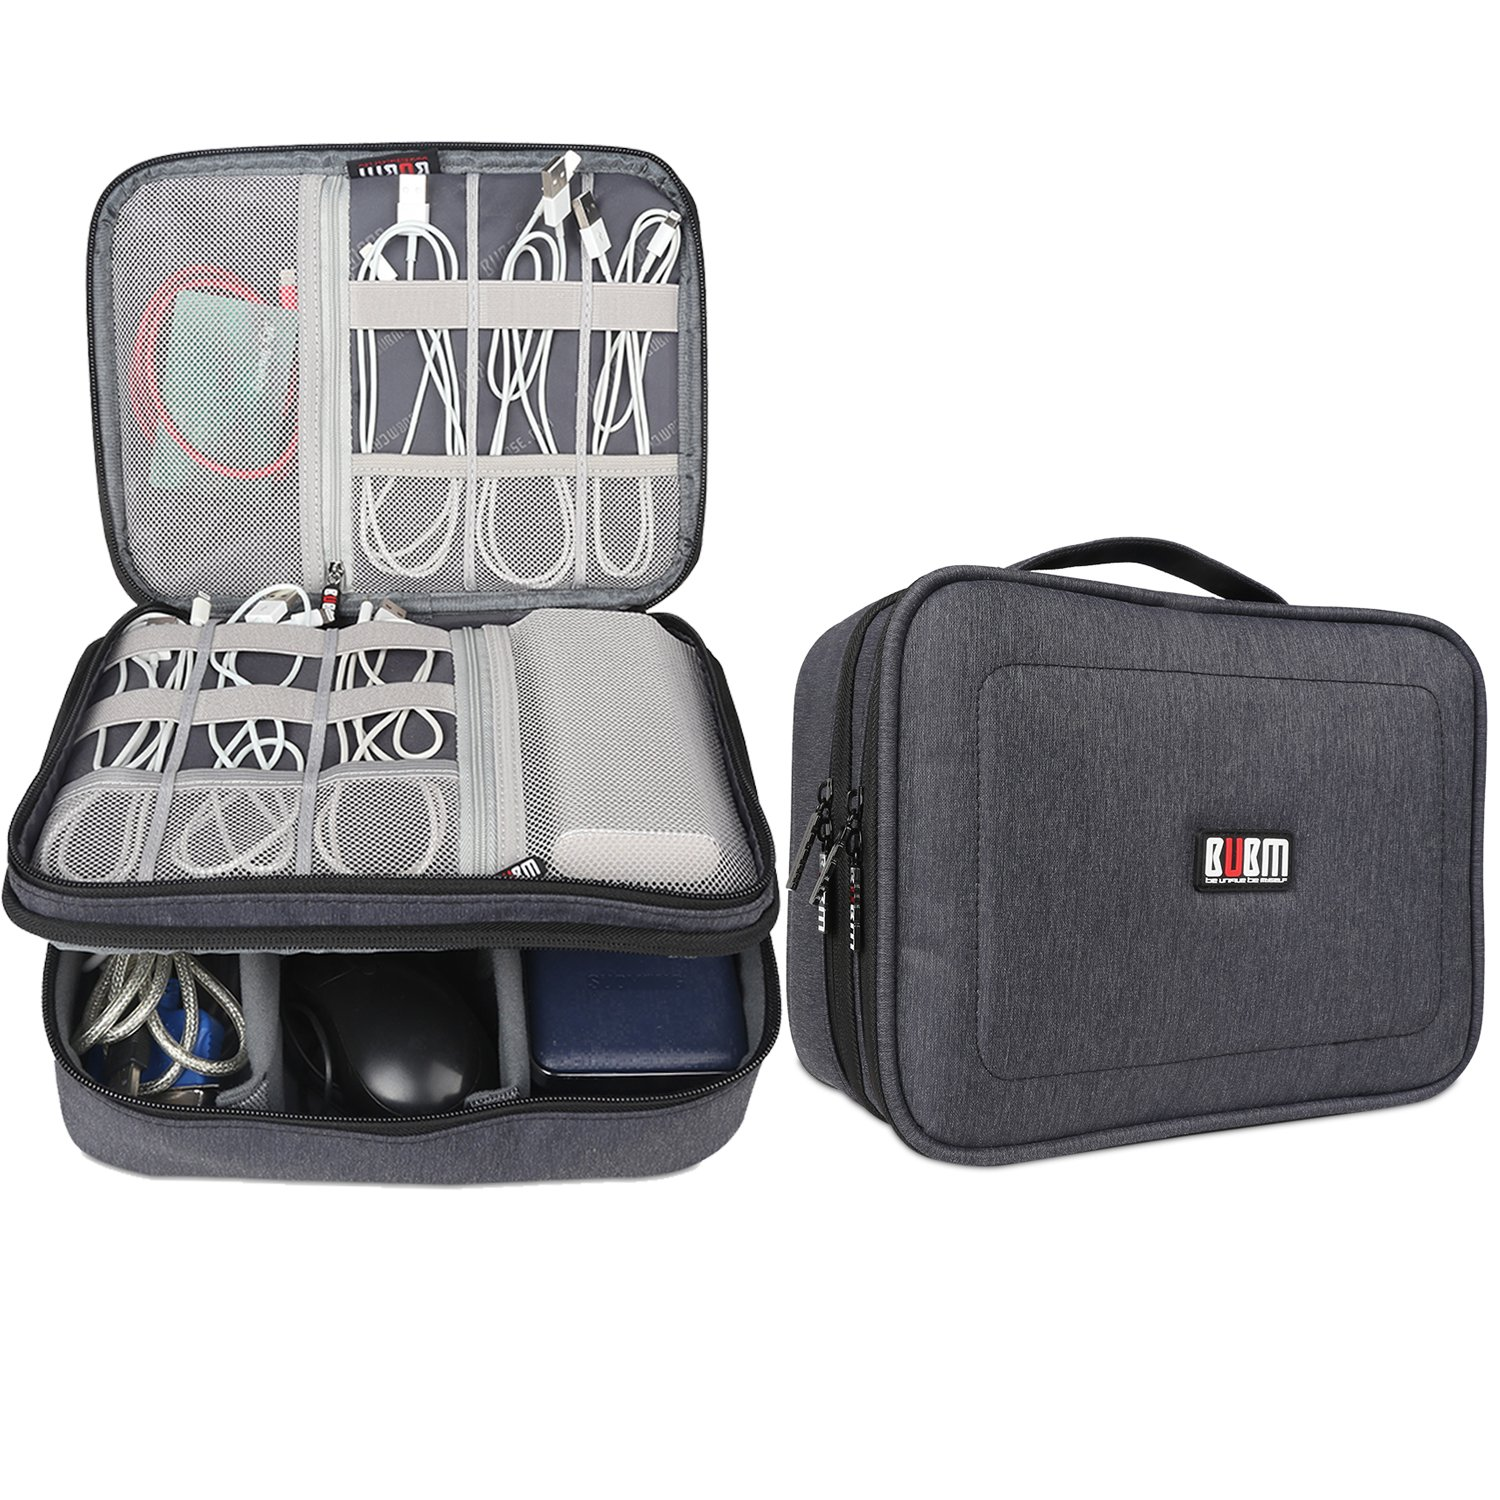 BUBM Electronic Organizer, Double Layer Travel Accessories Storage Bag for Cord, Adapter, battery, Camera and More-a Sleeve Pouch for iPad or up to 9.7'' Tablet(Large, Black)